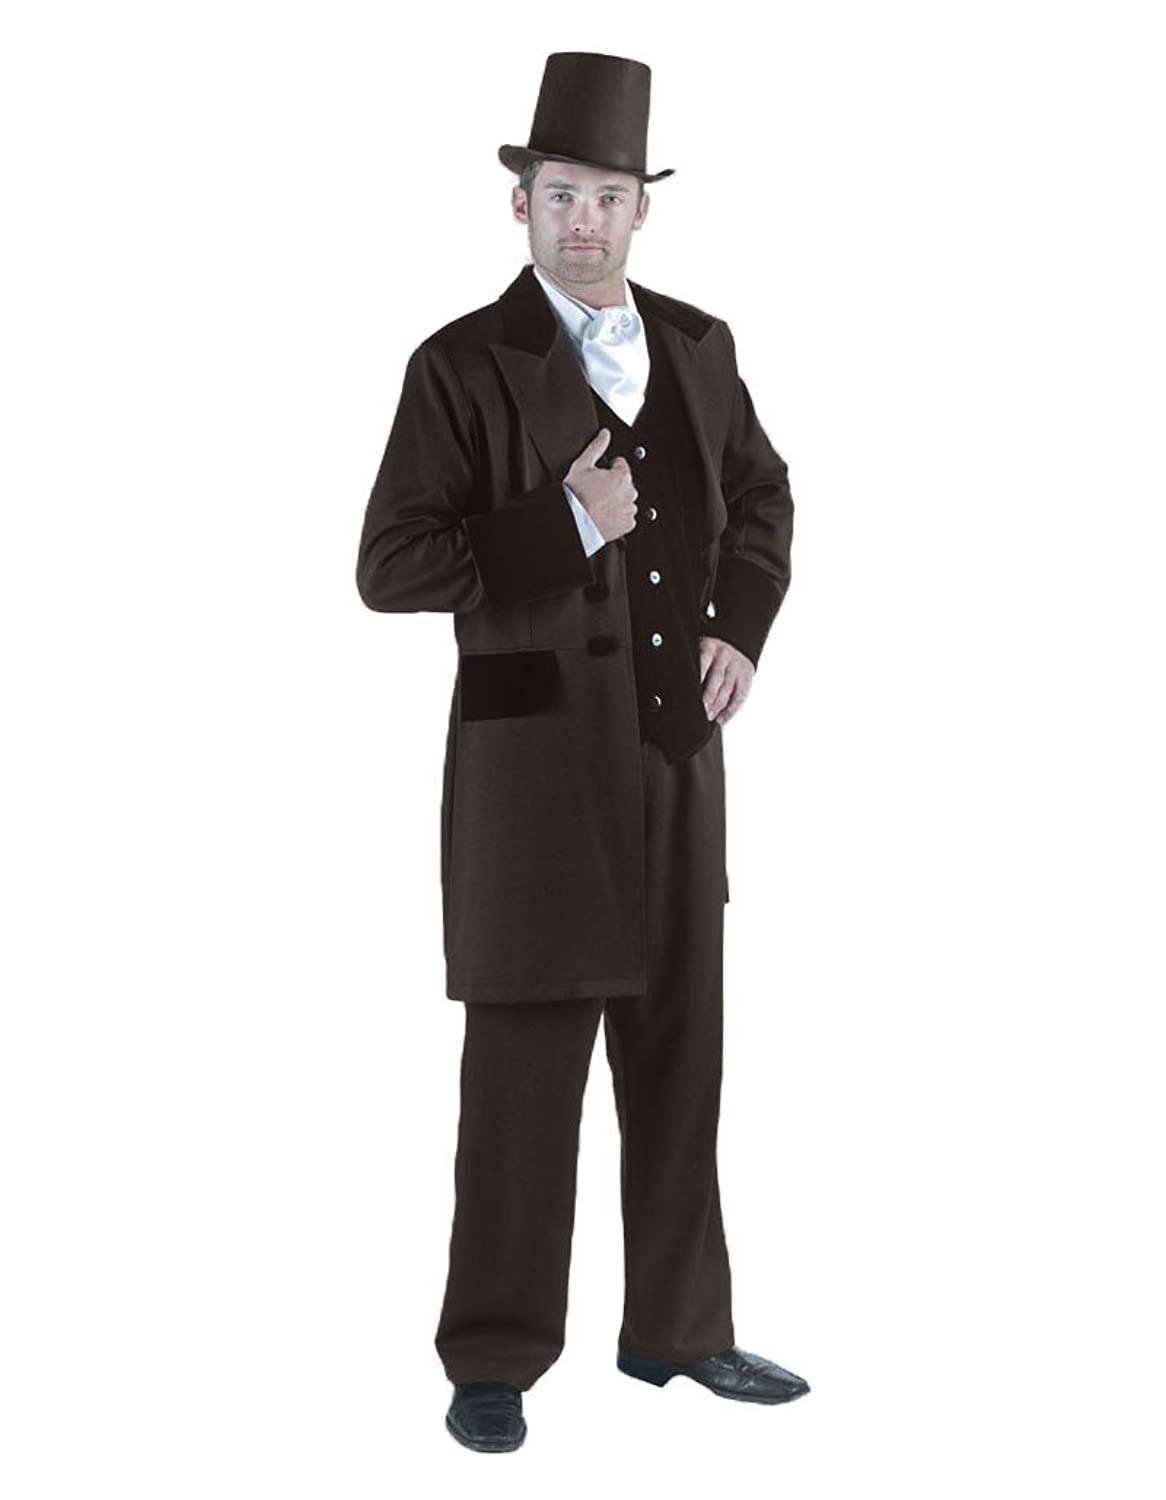 Victorian Men's Tuxedo, Tailcoats, Formalwear Guide Mens Rhett Butler Suit Theater Costume $249.99 AT vintagedancer.com